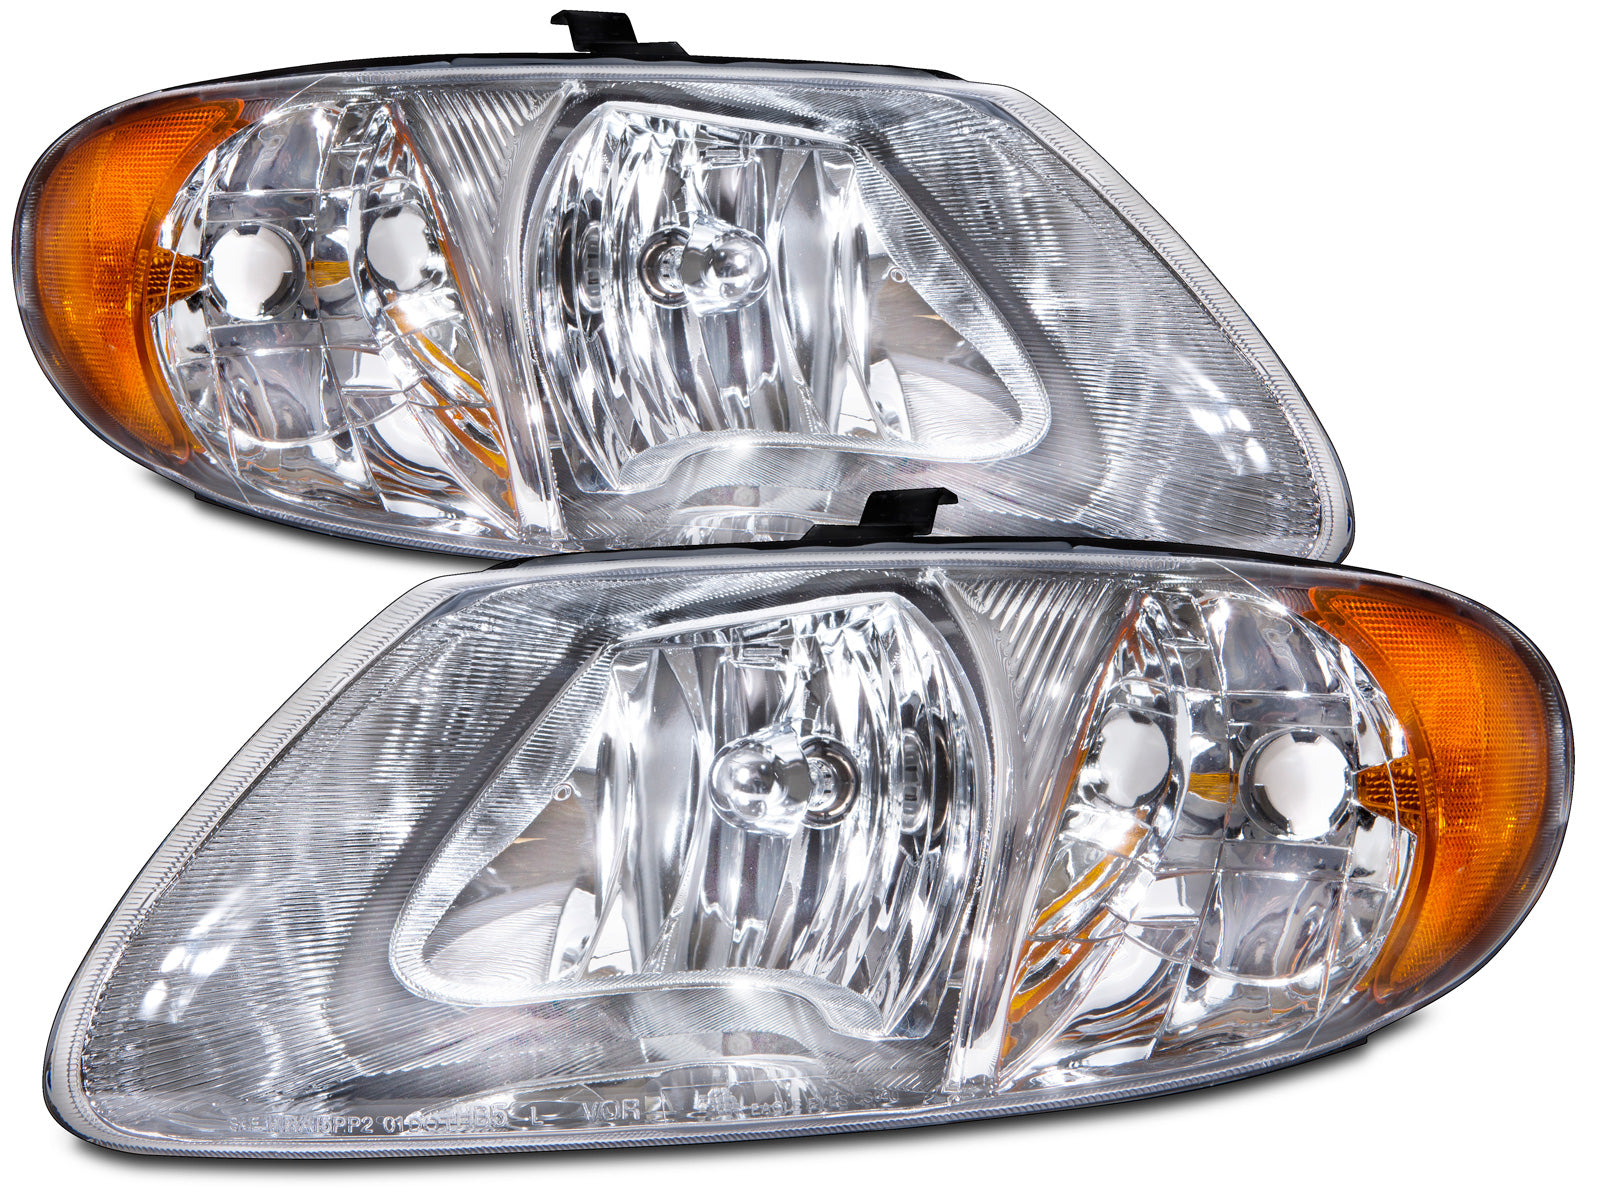 Headlights Set Chrome Left Right Pair Fits 2001-2007 Chrysler Town&Country/Dodge Caravan (w/113 inch Wheelbase)